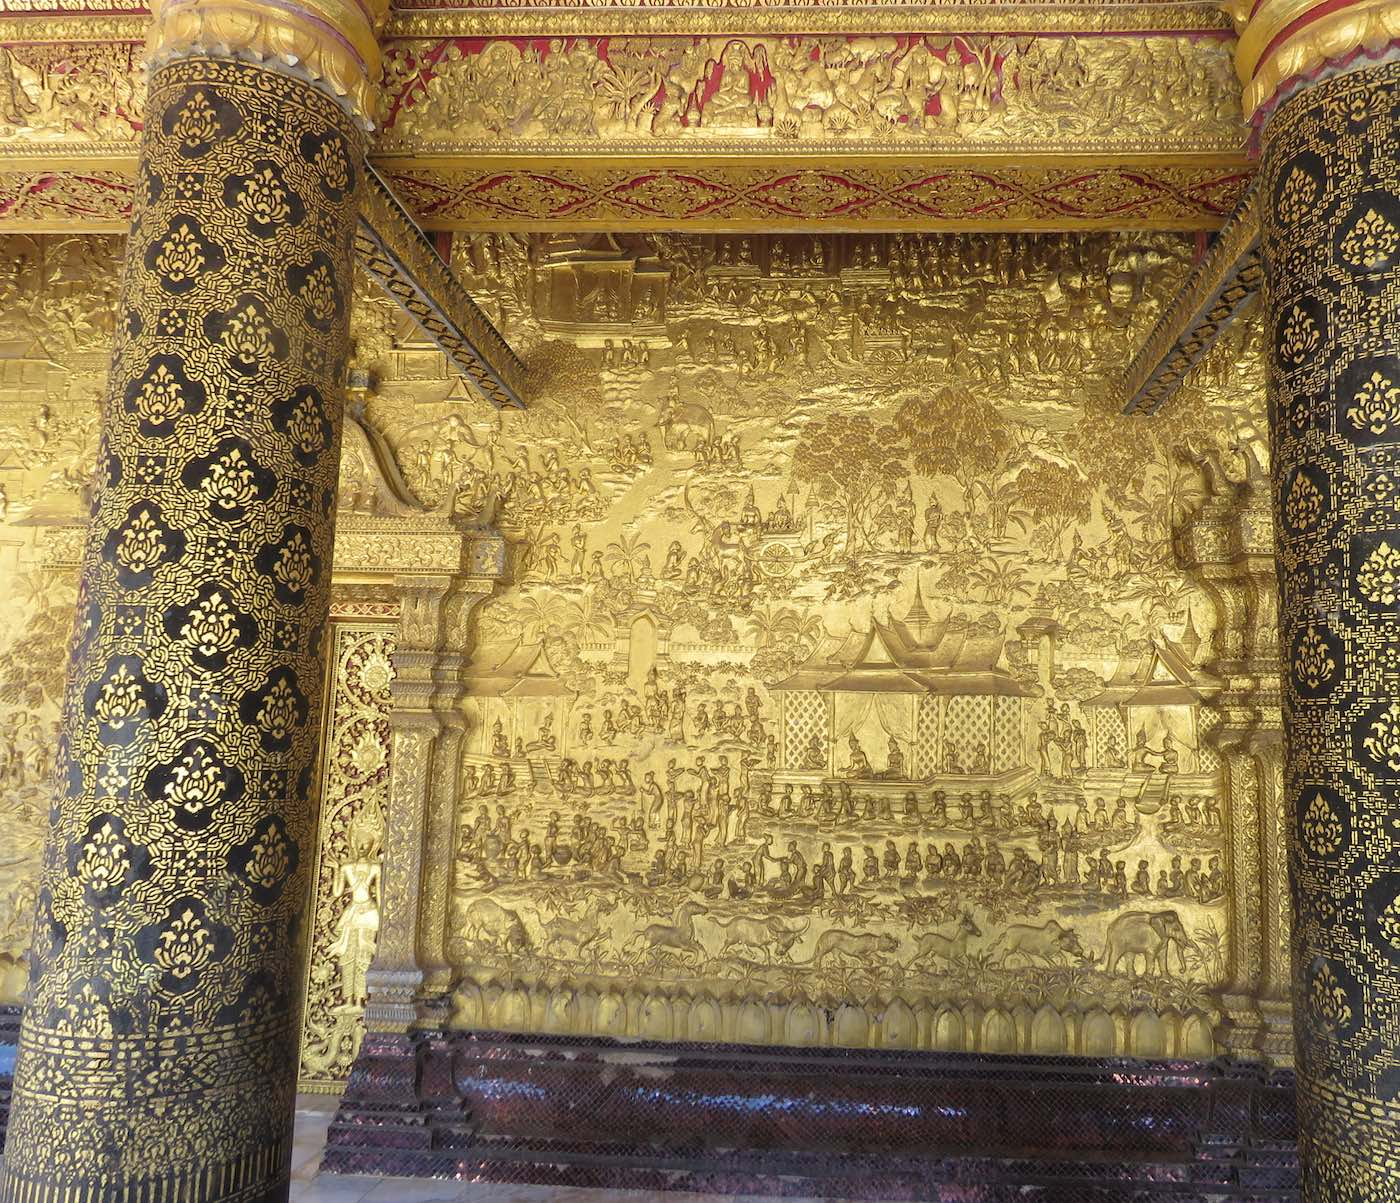 Outside golden wall with relief art